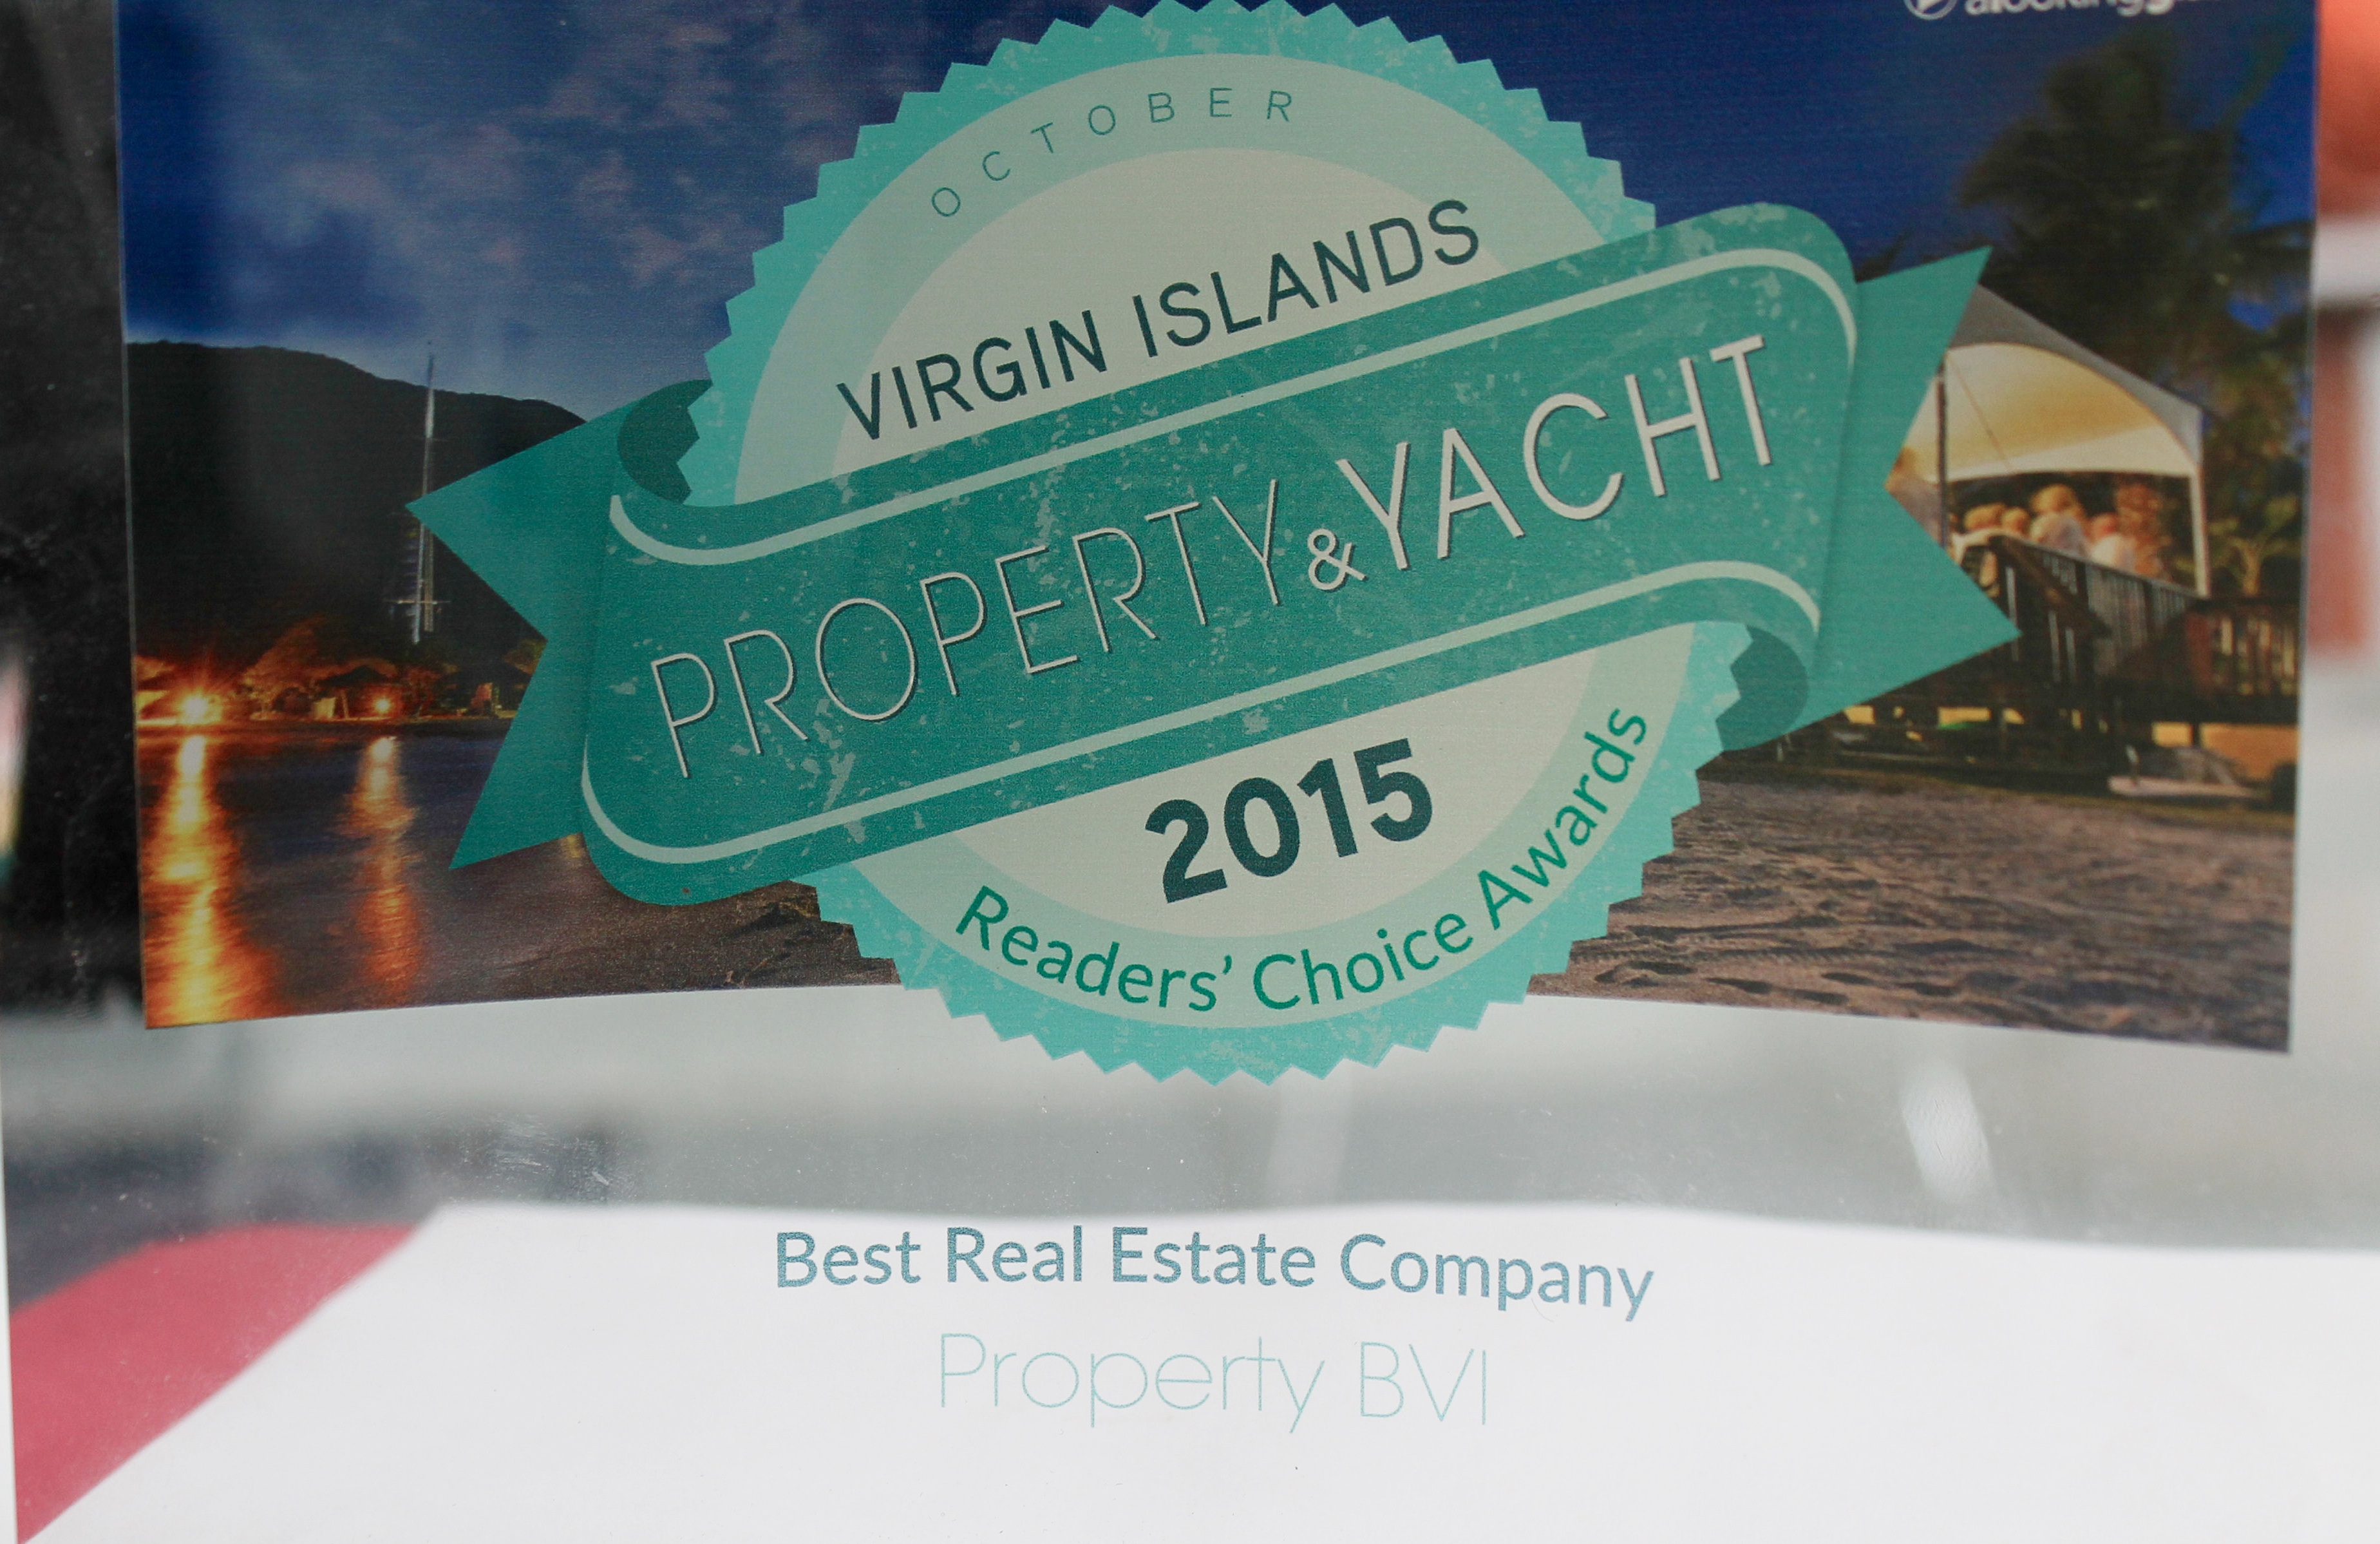 Meet GREG GEORGE: Property BVI Realtors | British Virgin Islands, Caribbean